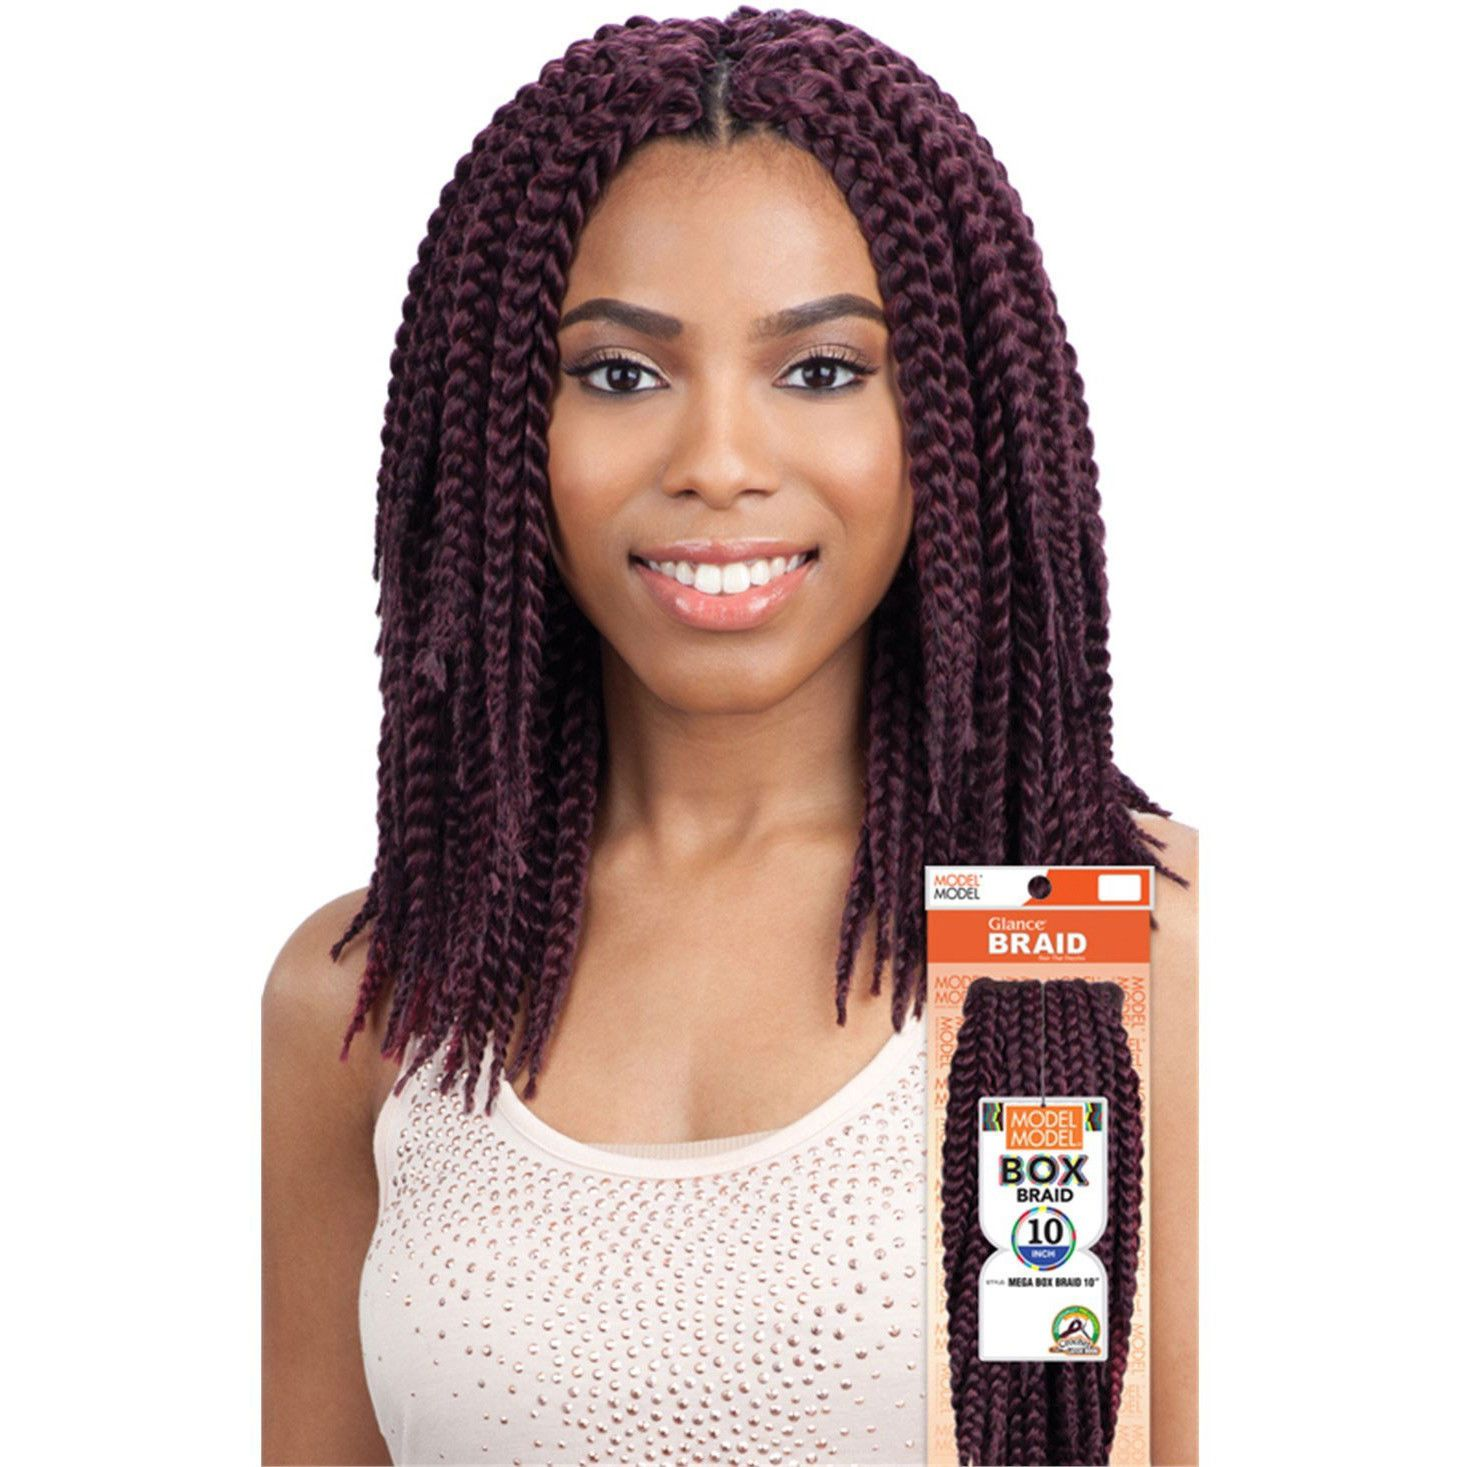 "Mega Box Braid 10"" Model Model Glance Synthetic Crochet"